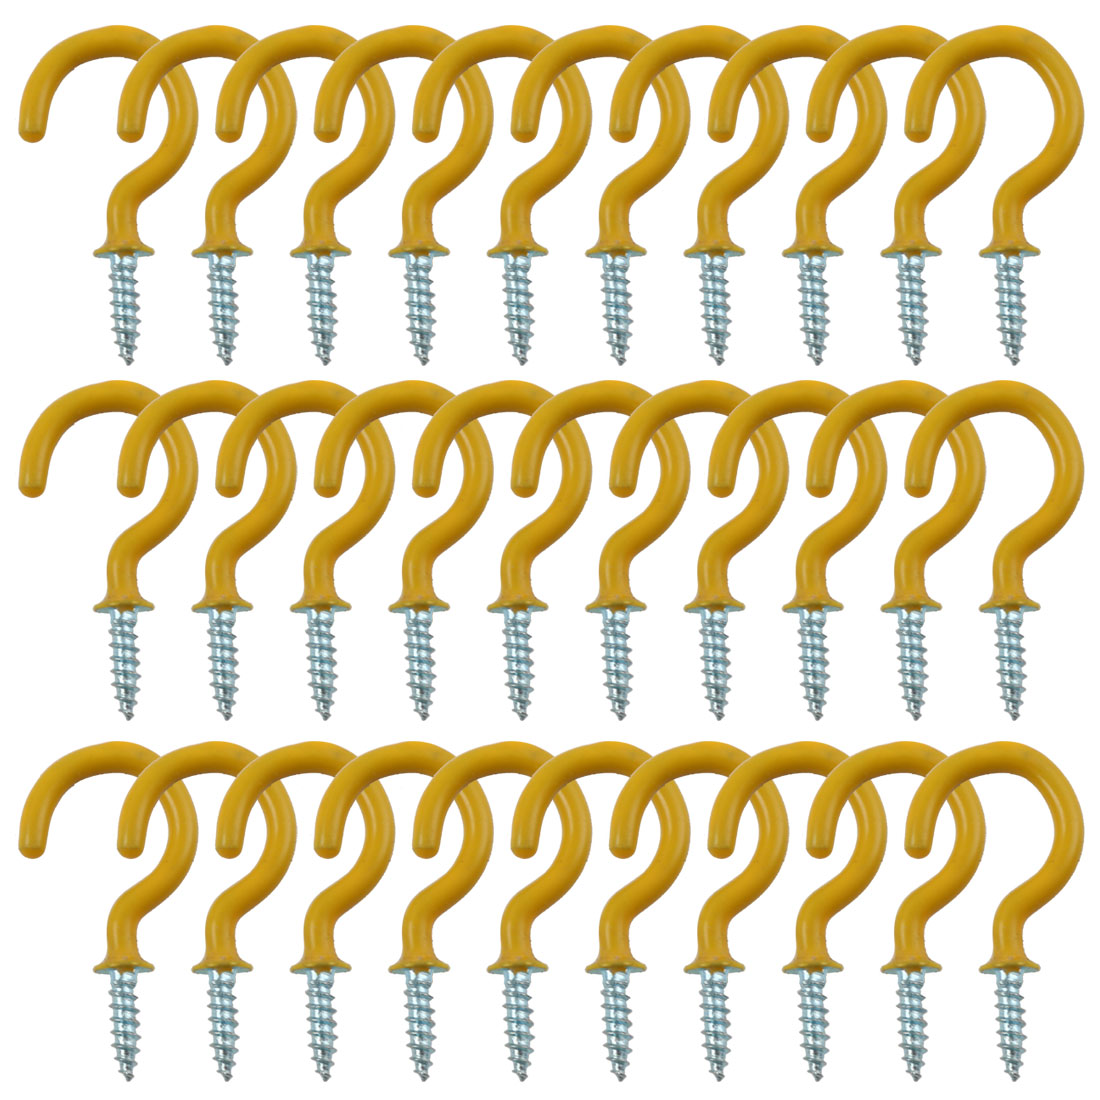 30pcs Cup Ceiling Hooks 1 Inch Metal with Vinyl Coated Screw in Holder Yellow